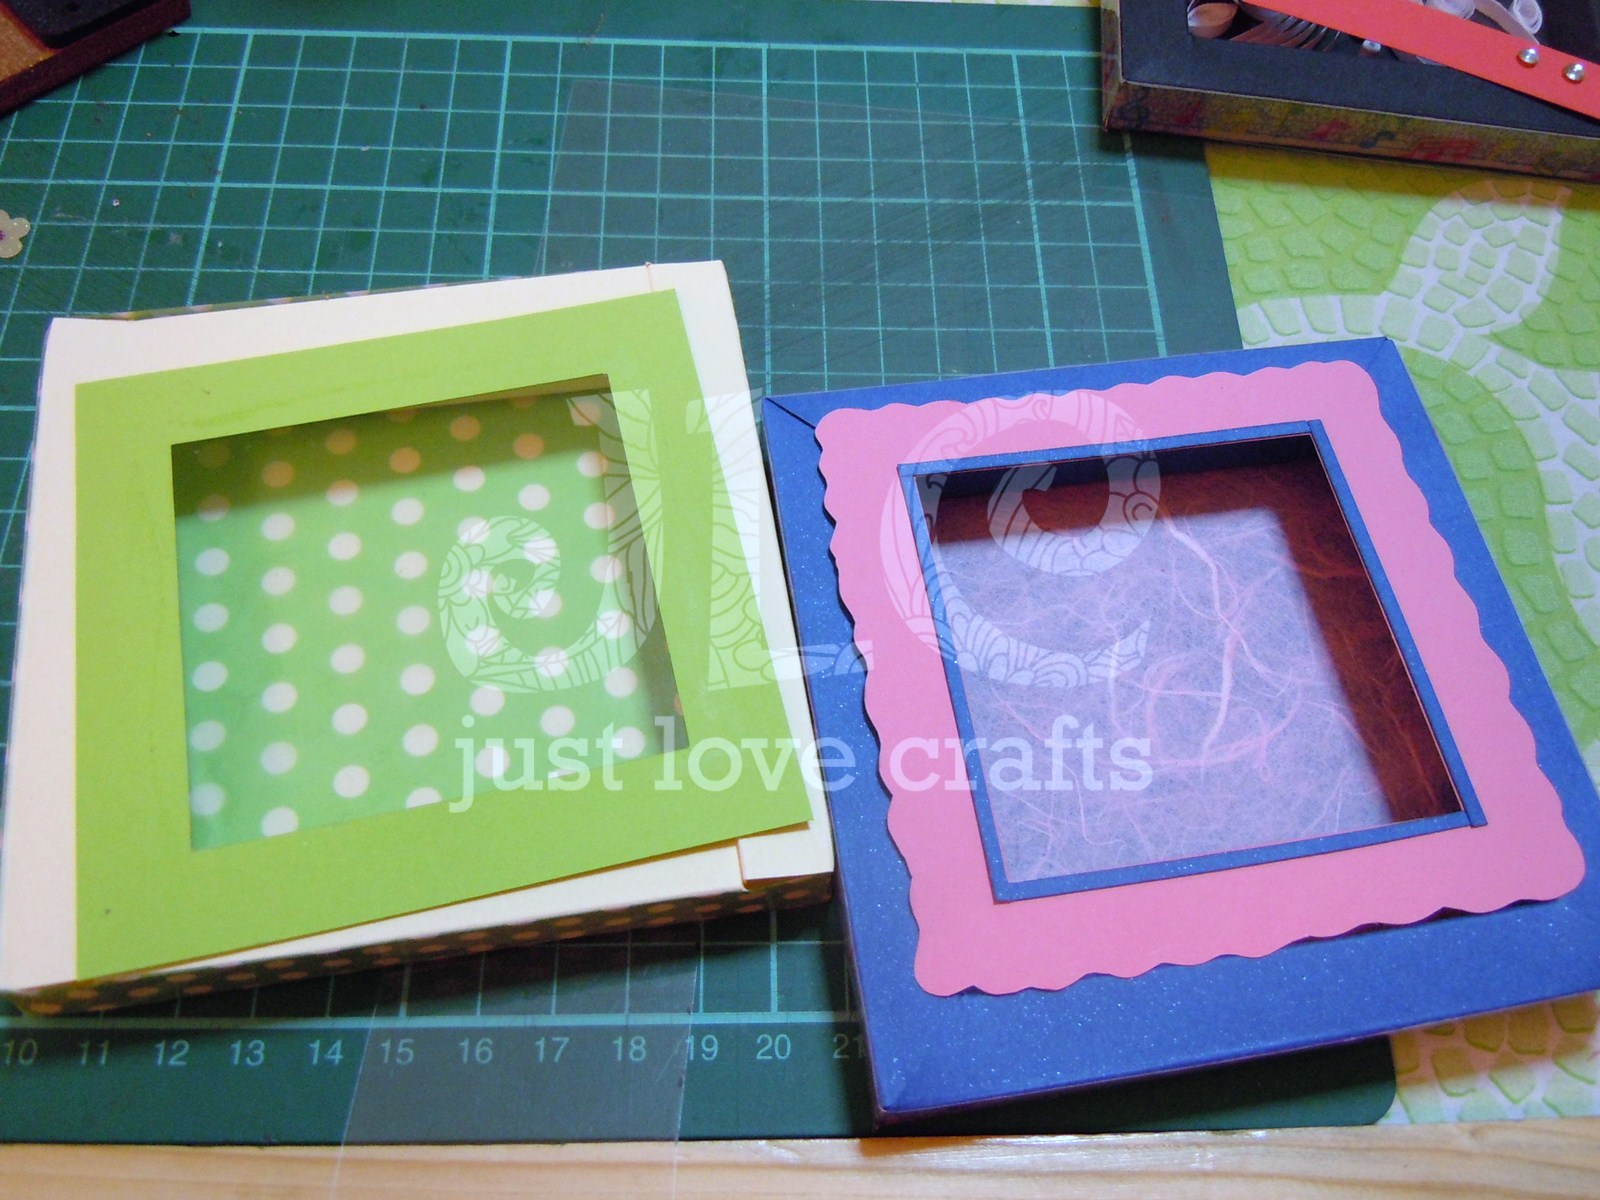 Just love crafts framed shadow box do it yourself quilled just love crafts framed shadow box do it yourself quilled frames part 1 jeuxipadfo Image collections